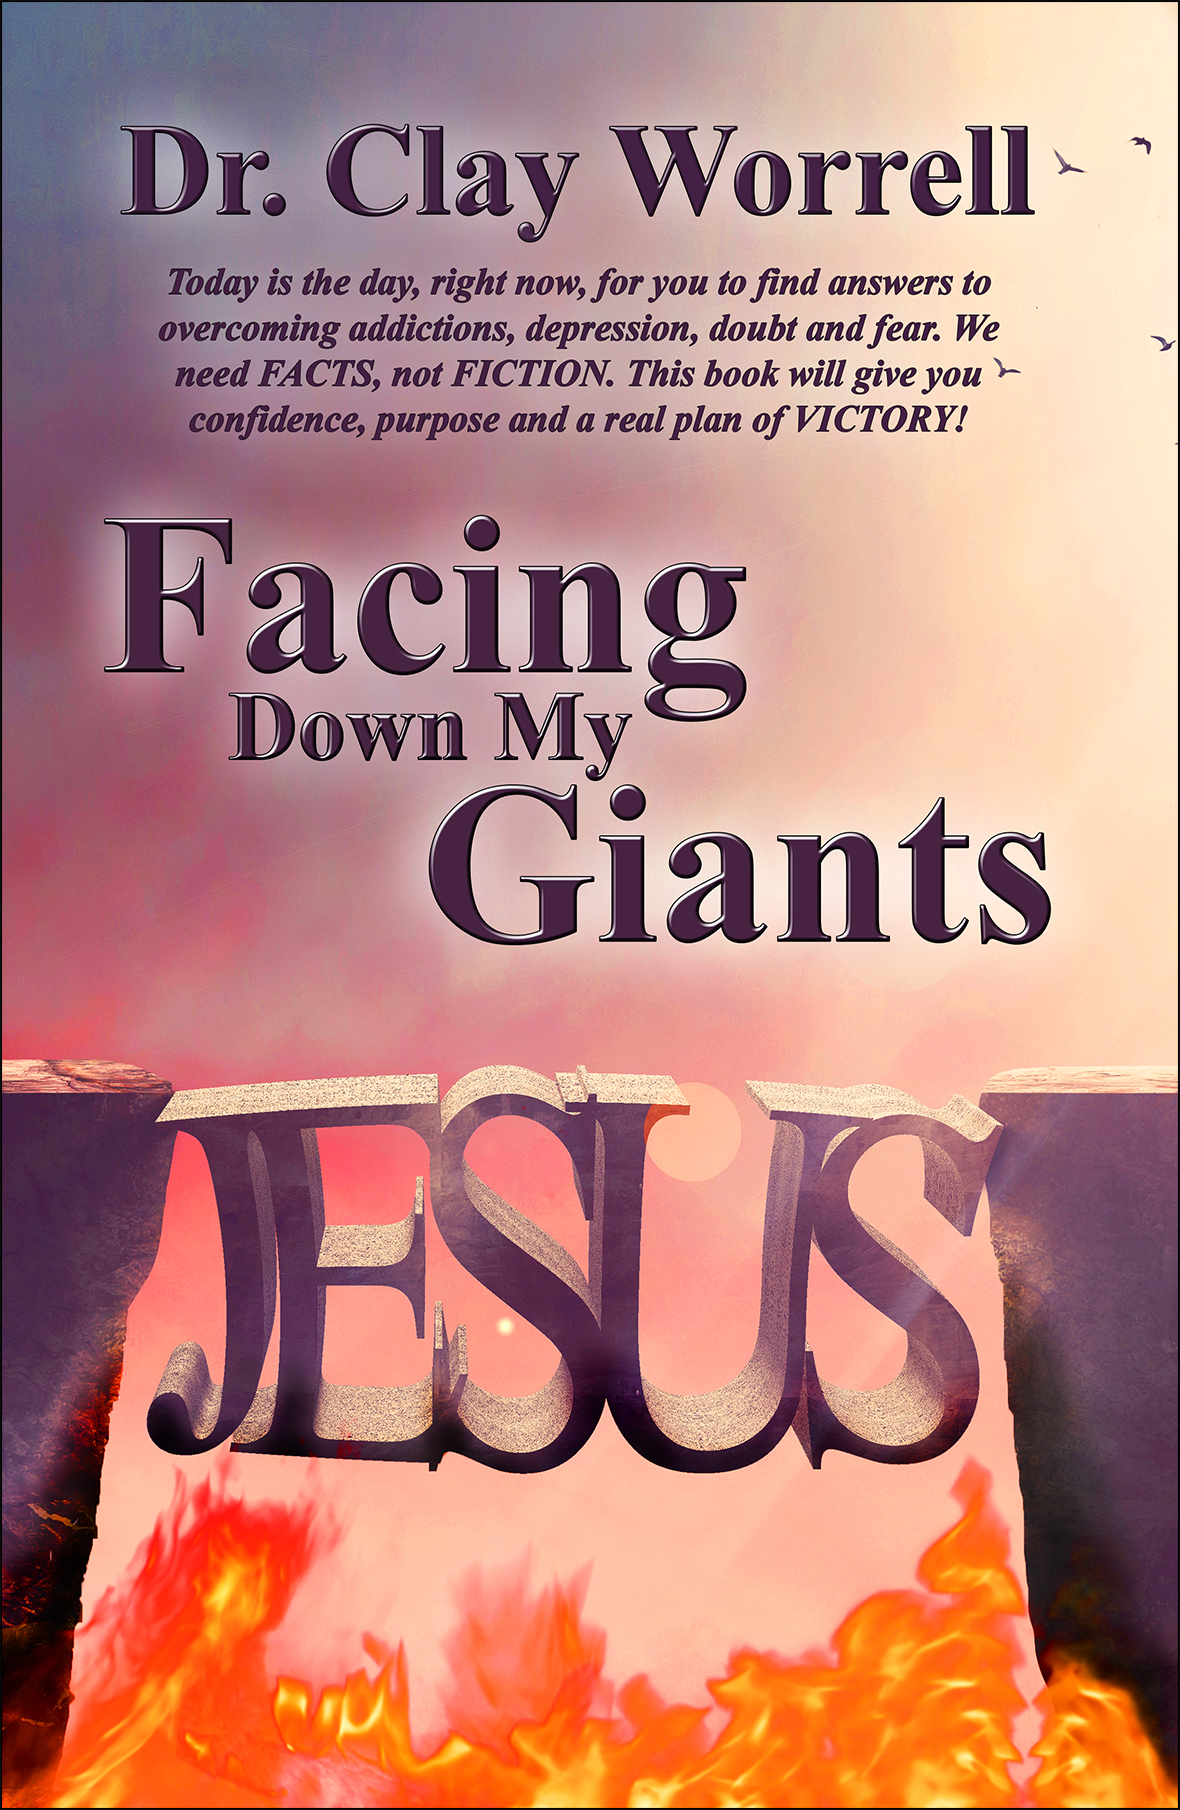 Facing Down My Giants Front Cover v2c reduced for Web Insertion